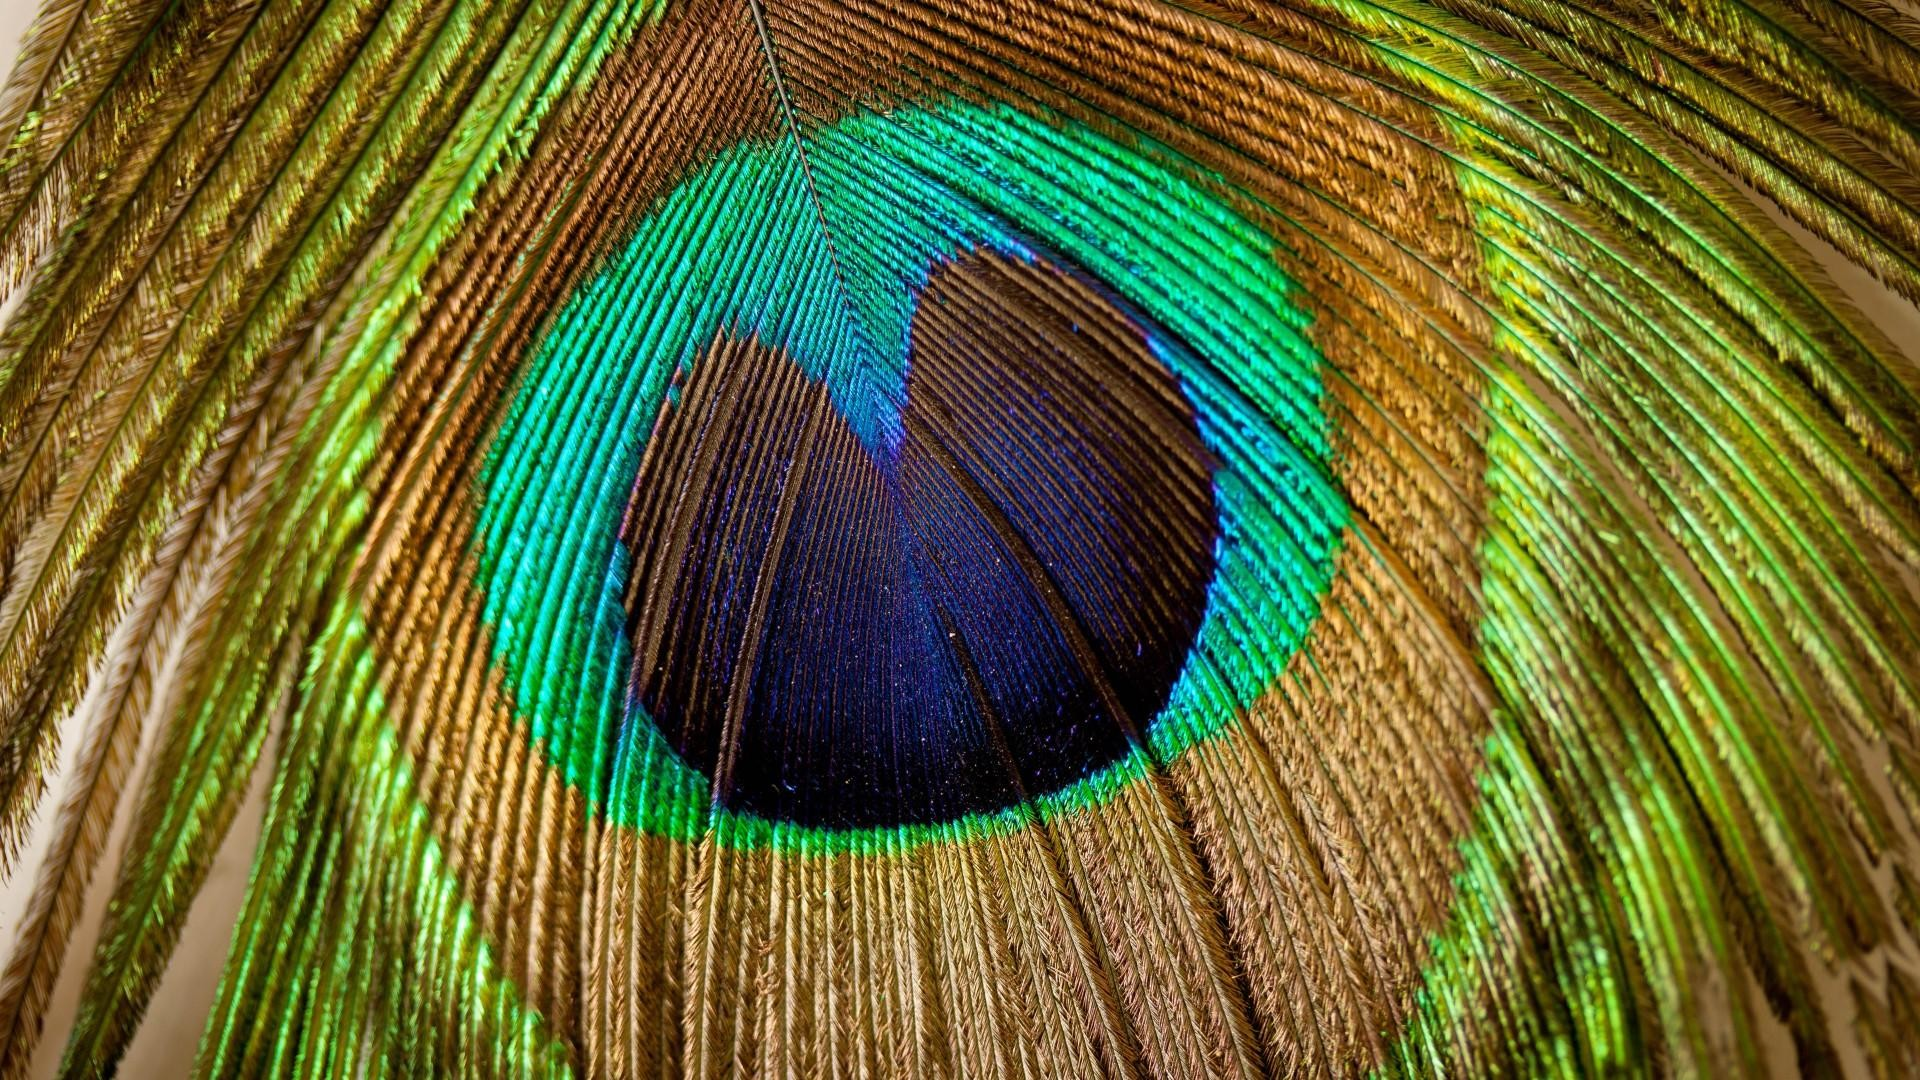 1920x1080 free peacock feathers picture hd wallpapers background photos mac  wallpapers amazing artworks best wallpaper ever wallpaper for iphone free  1920×1080 ...